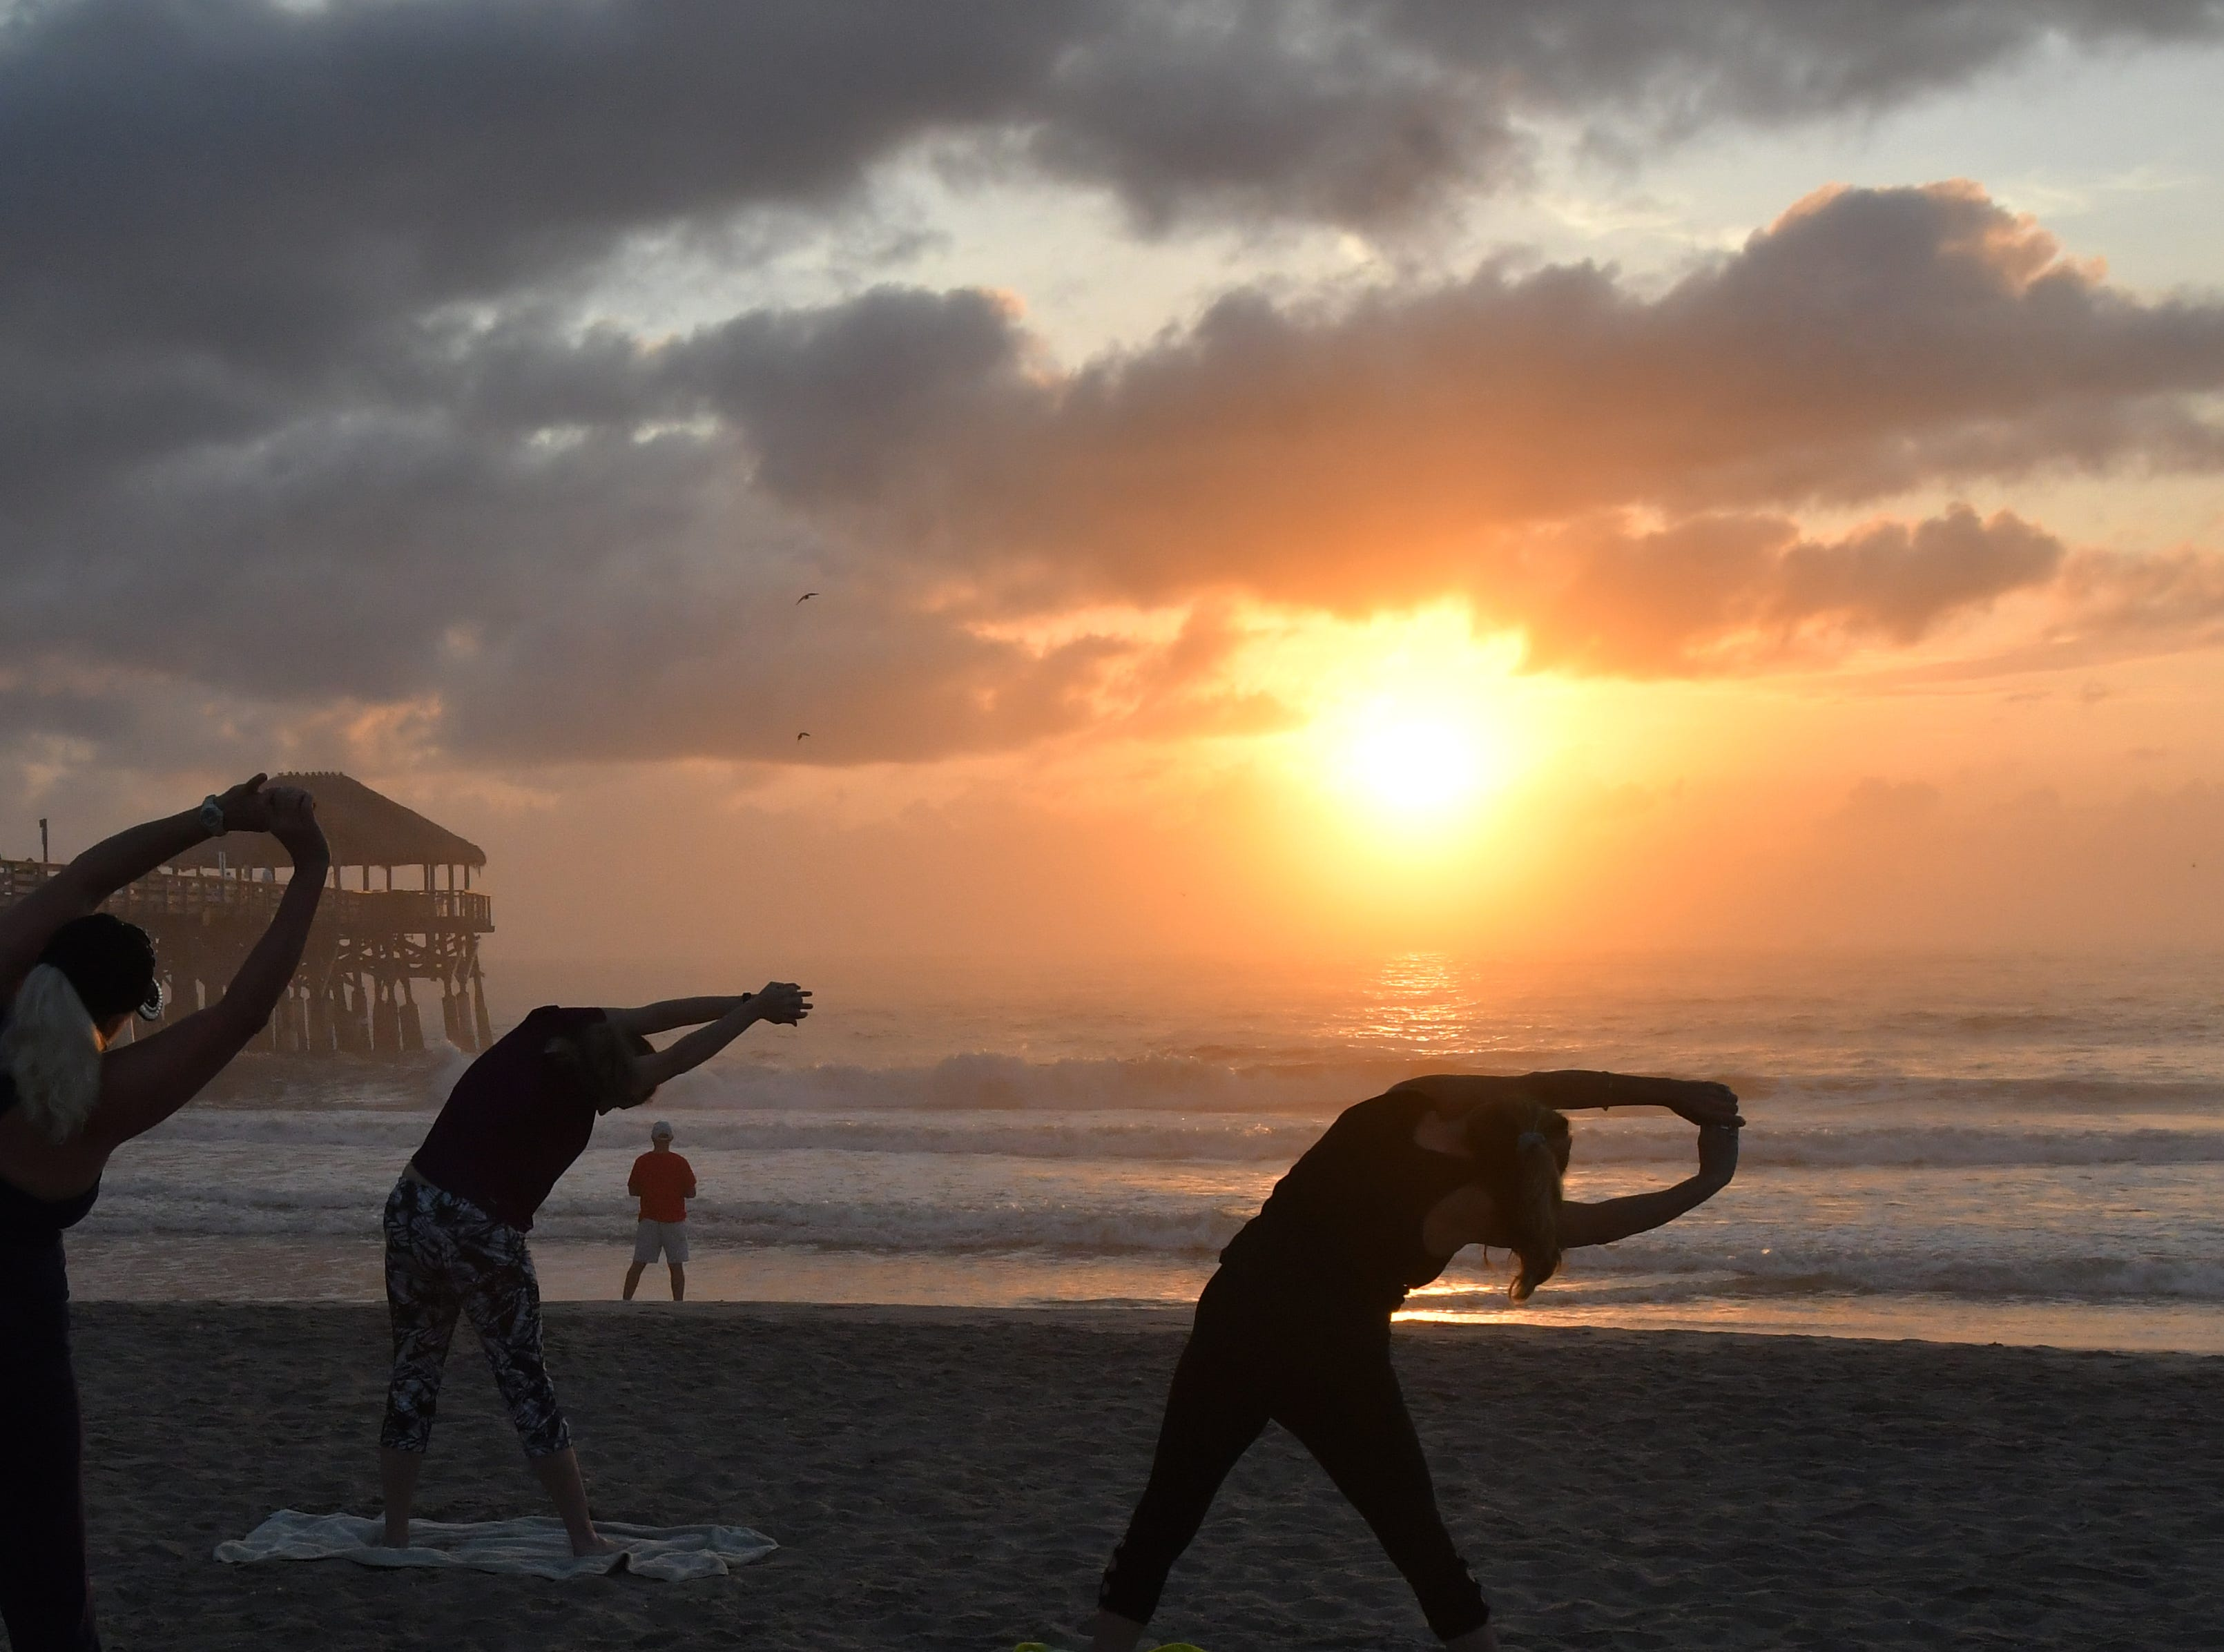 Sunrise Celebration Stretch at sunrise next to the Westgate Cocoa Beach Pier on the first day of Daylight Savings. This Yoga group, coordinated by Robin Taylor, meets at other locations as well. Left to right is Marissa Shebuski, Anne Lee, Robin Taylor, and Maria Shirley.